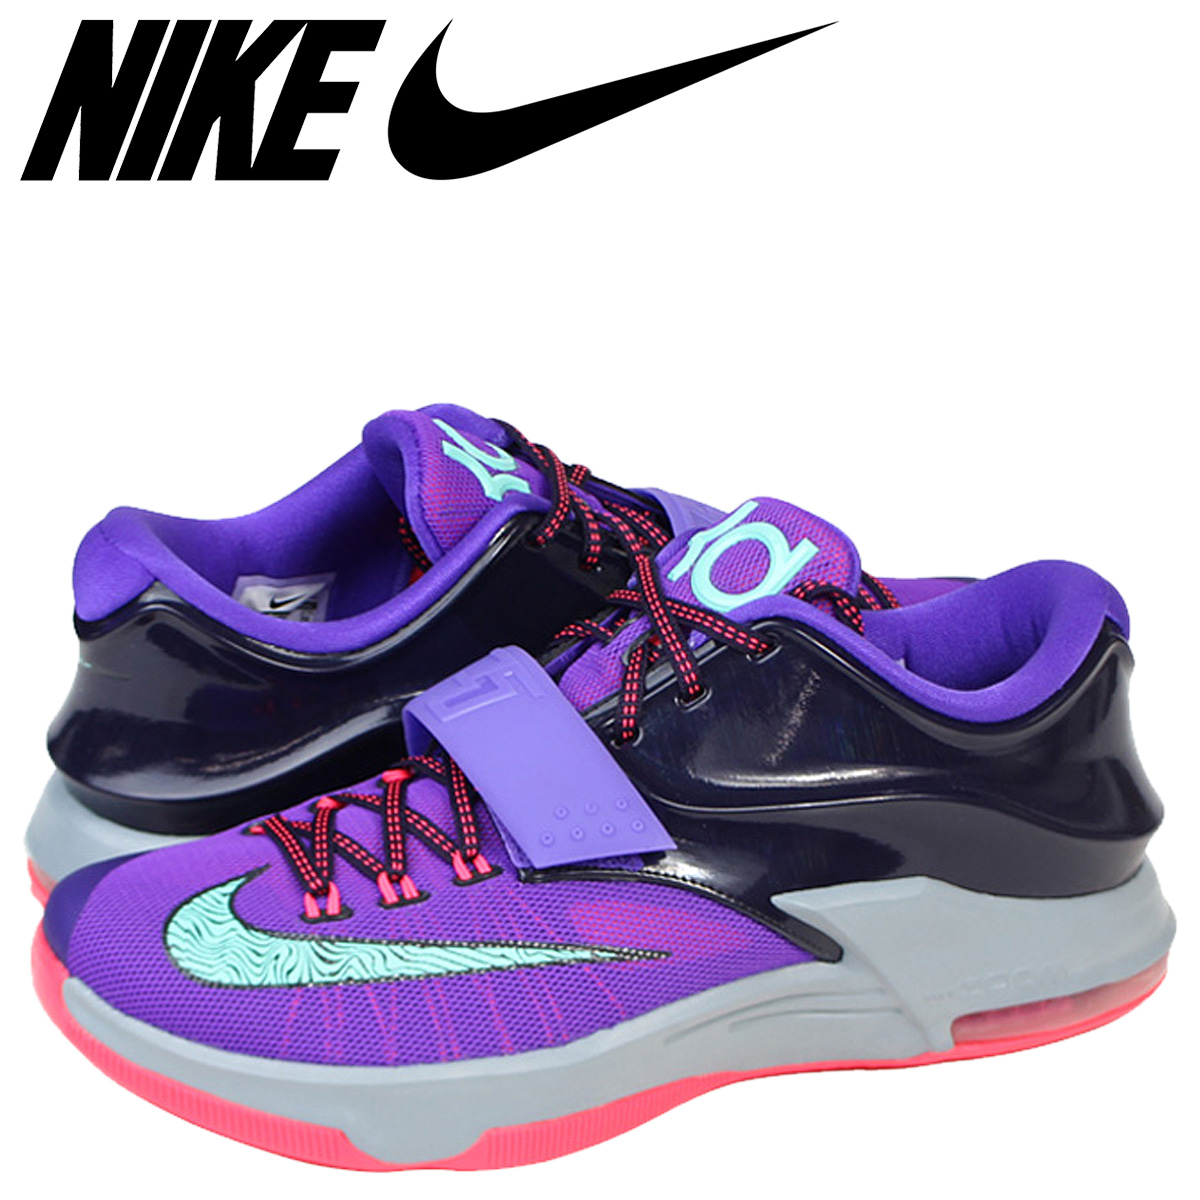 various colors 44ac6 85e9a NIKE Nike Kay D sneakers KD VII Kevin Durant 7-limited 653,996-535 purple  men